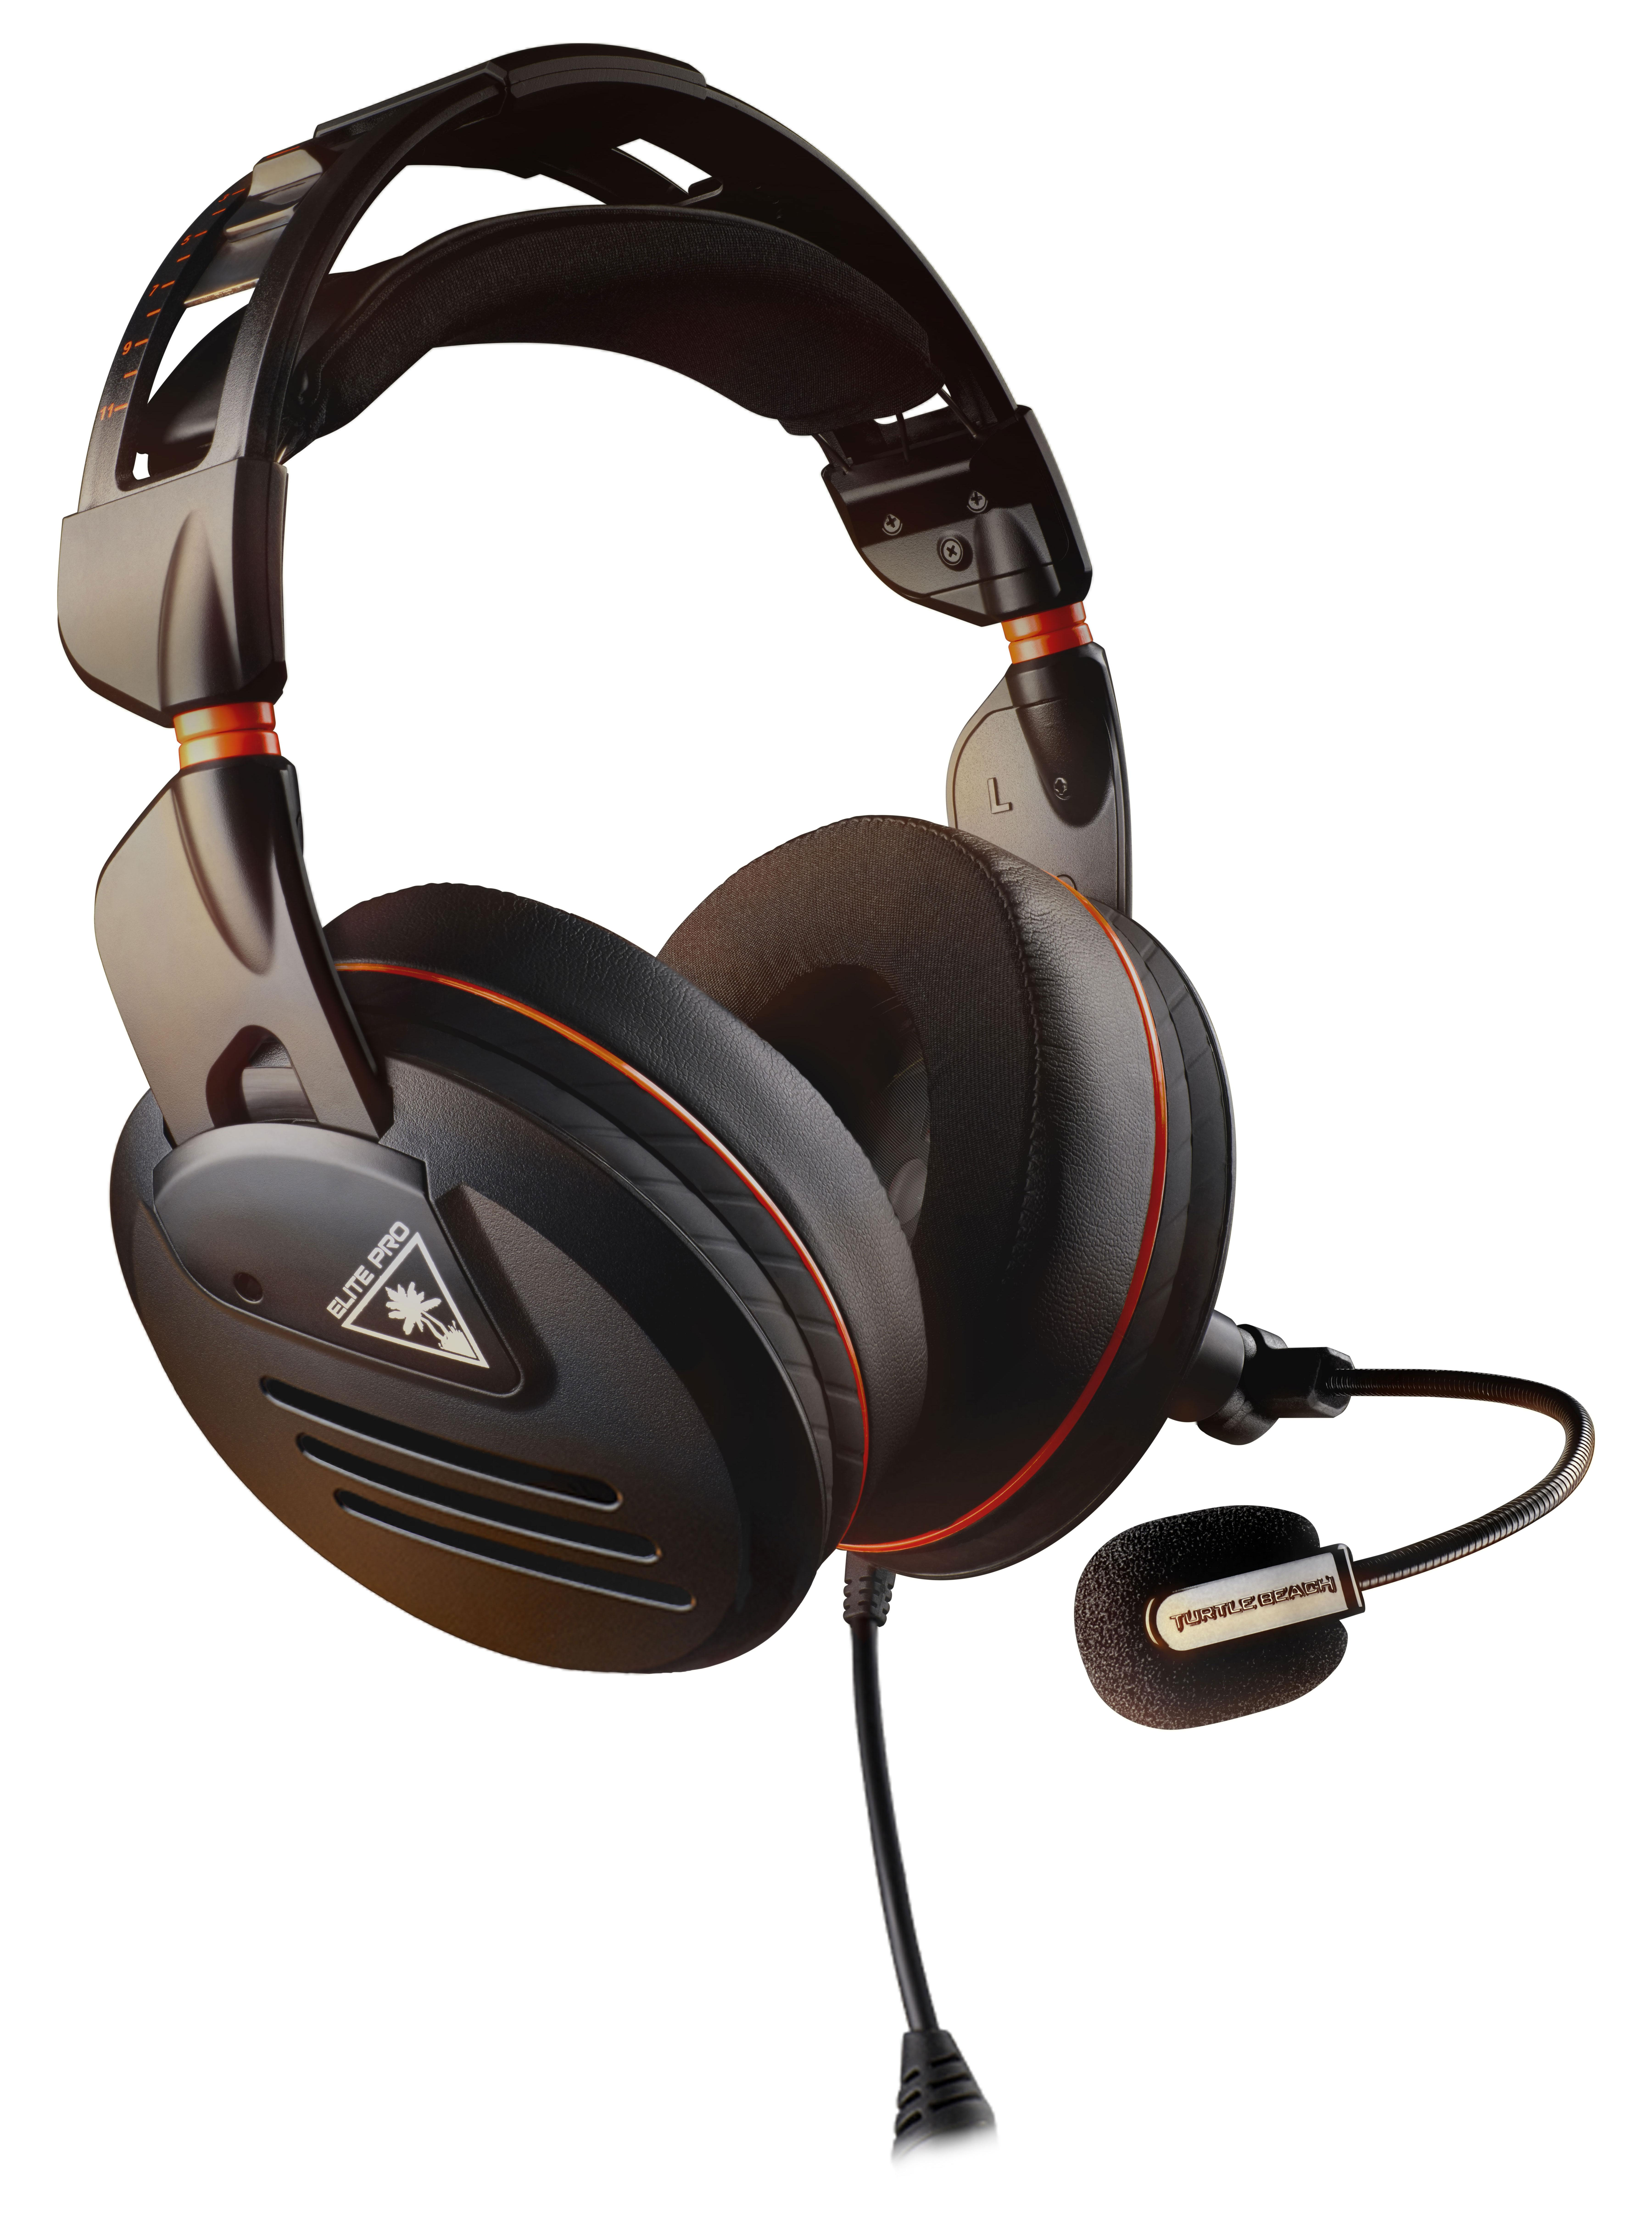 Mic Wiring Colours All Kind Of Diagrams X12 Diagram Turtle Beach Headset Trrs Wire U2022 Billigfluege Co 4 Pin Cb Astatic Microphone